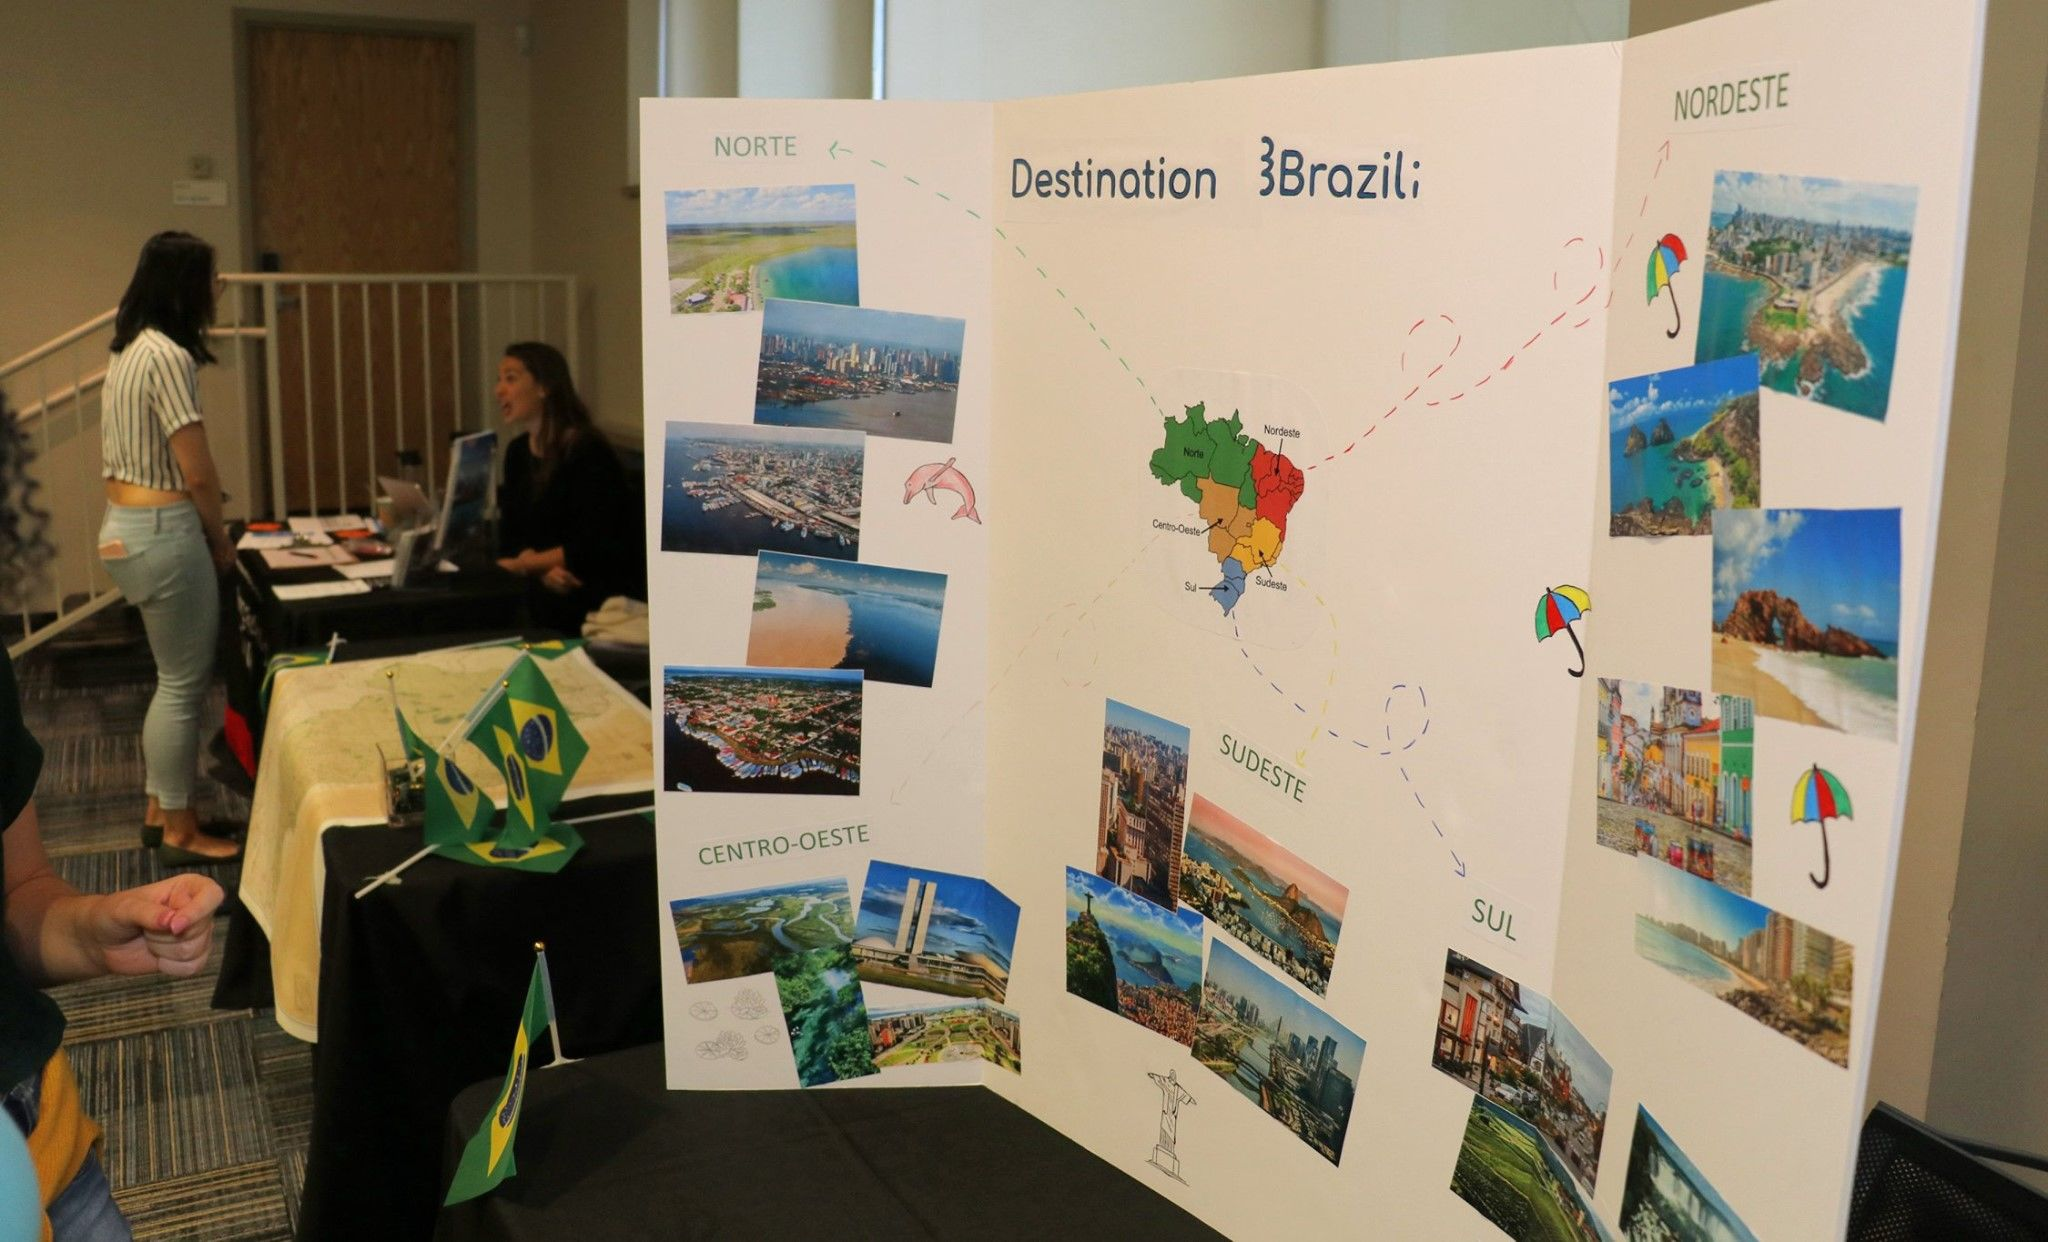 Poster of Where to Visit in Brazil